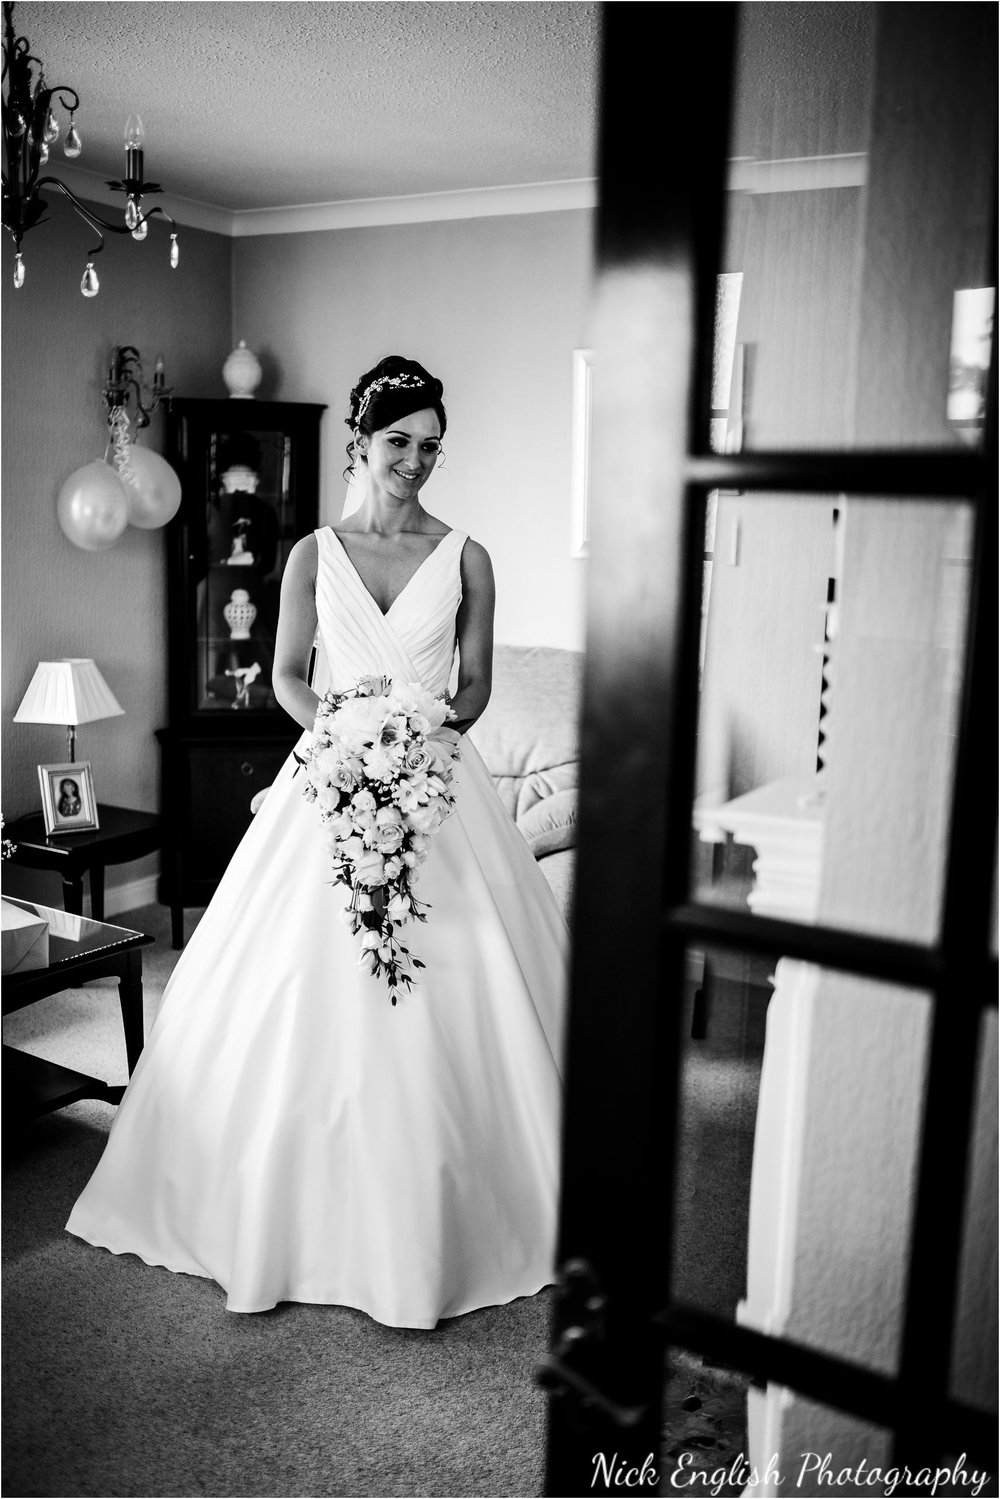 Emily David Wedding Photographs at Barton Grange Preston by Nick English Photography 39jpg.jpeg